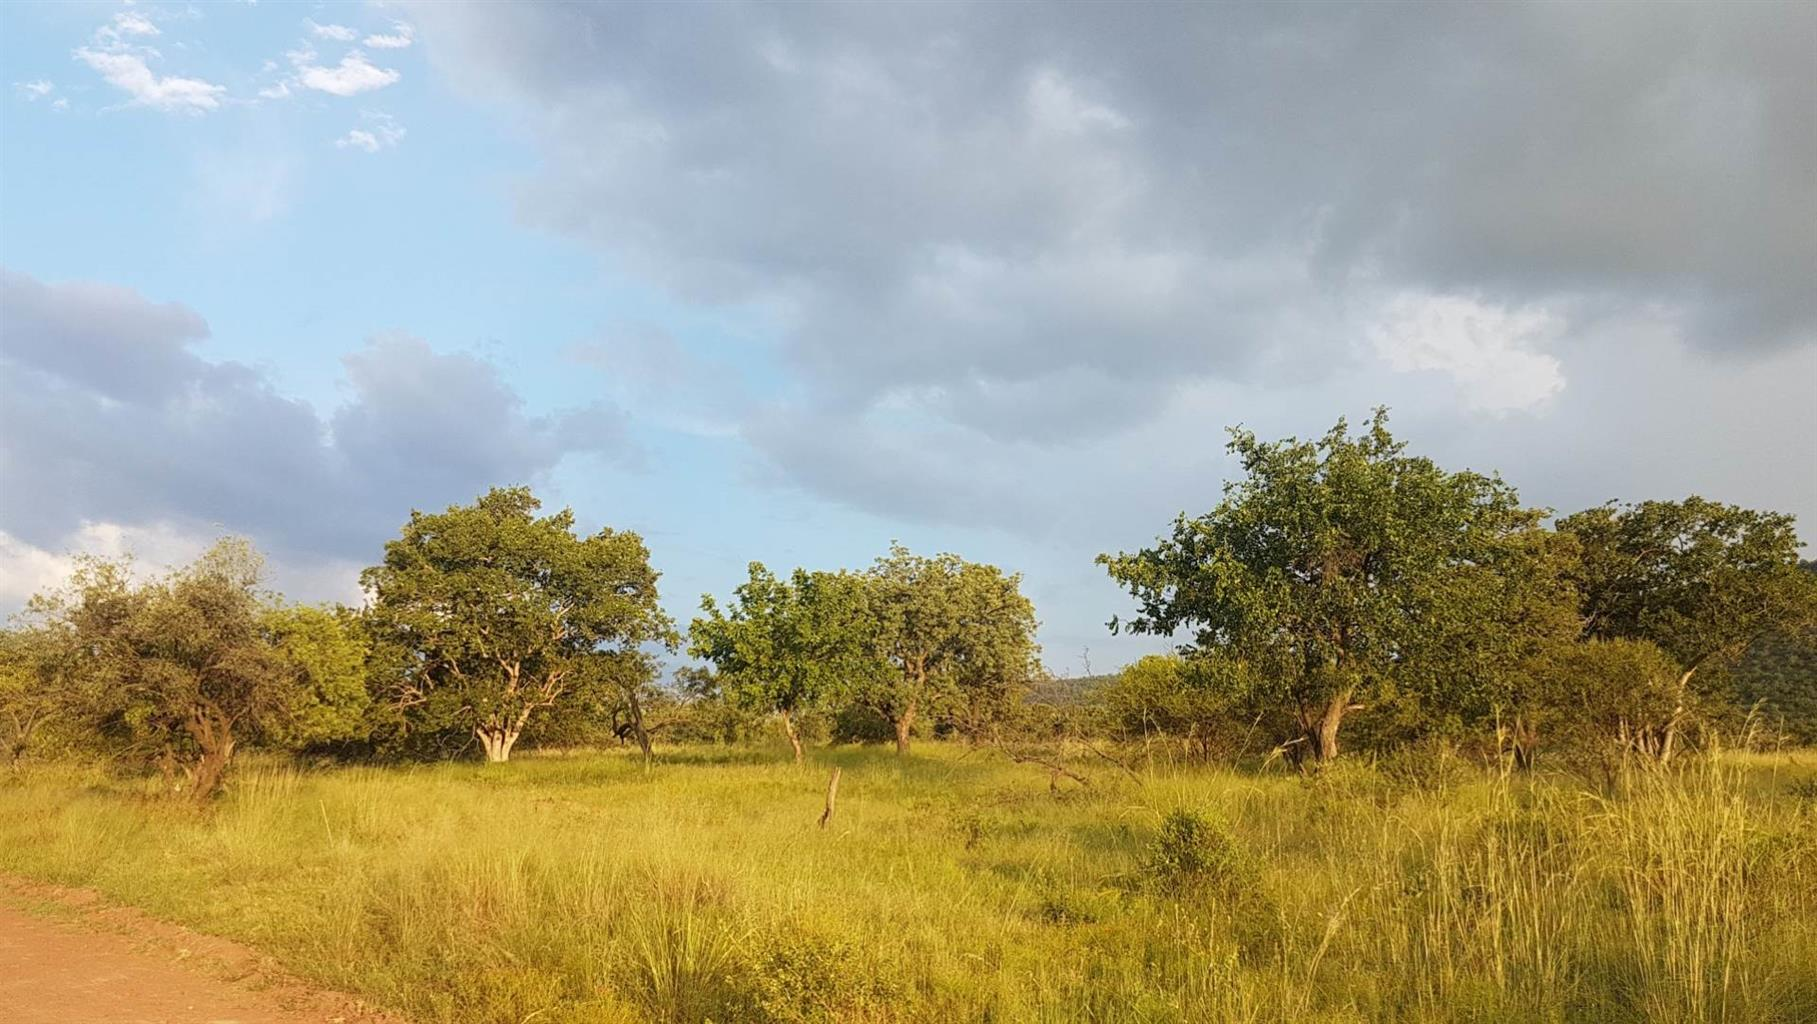 Vacant Land Residential For Sale in KRANSPOORT